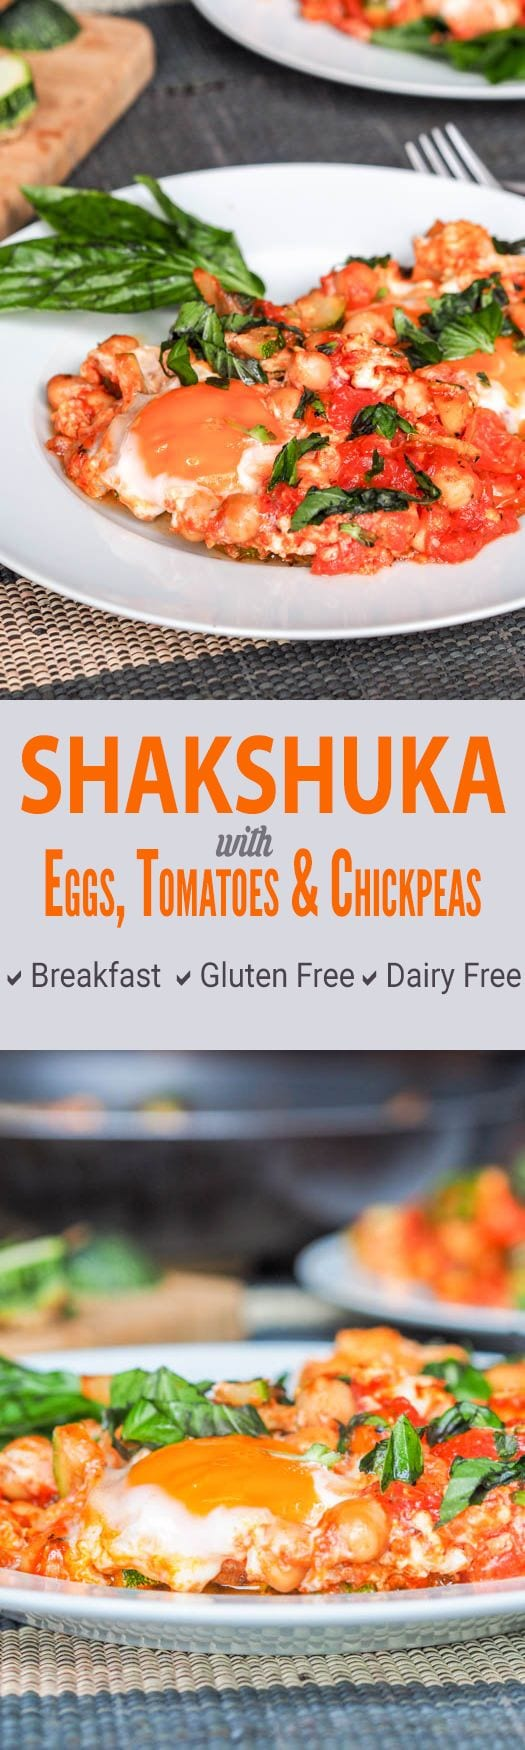 This quick shortcut fusion shakshuka is a breakfast egg dish made with onions, spices, chickpeas and tomatoes. A hearty high protein breakfast. GF & DF. #breakfast #healthy #eggs #glutenfree #dairyfree